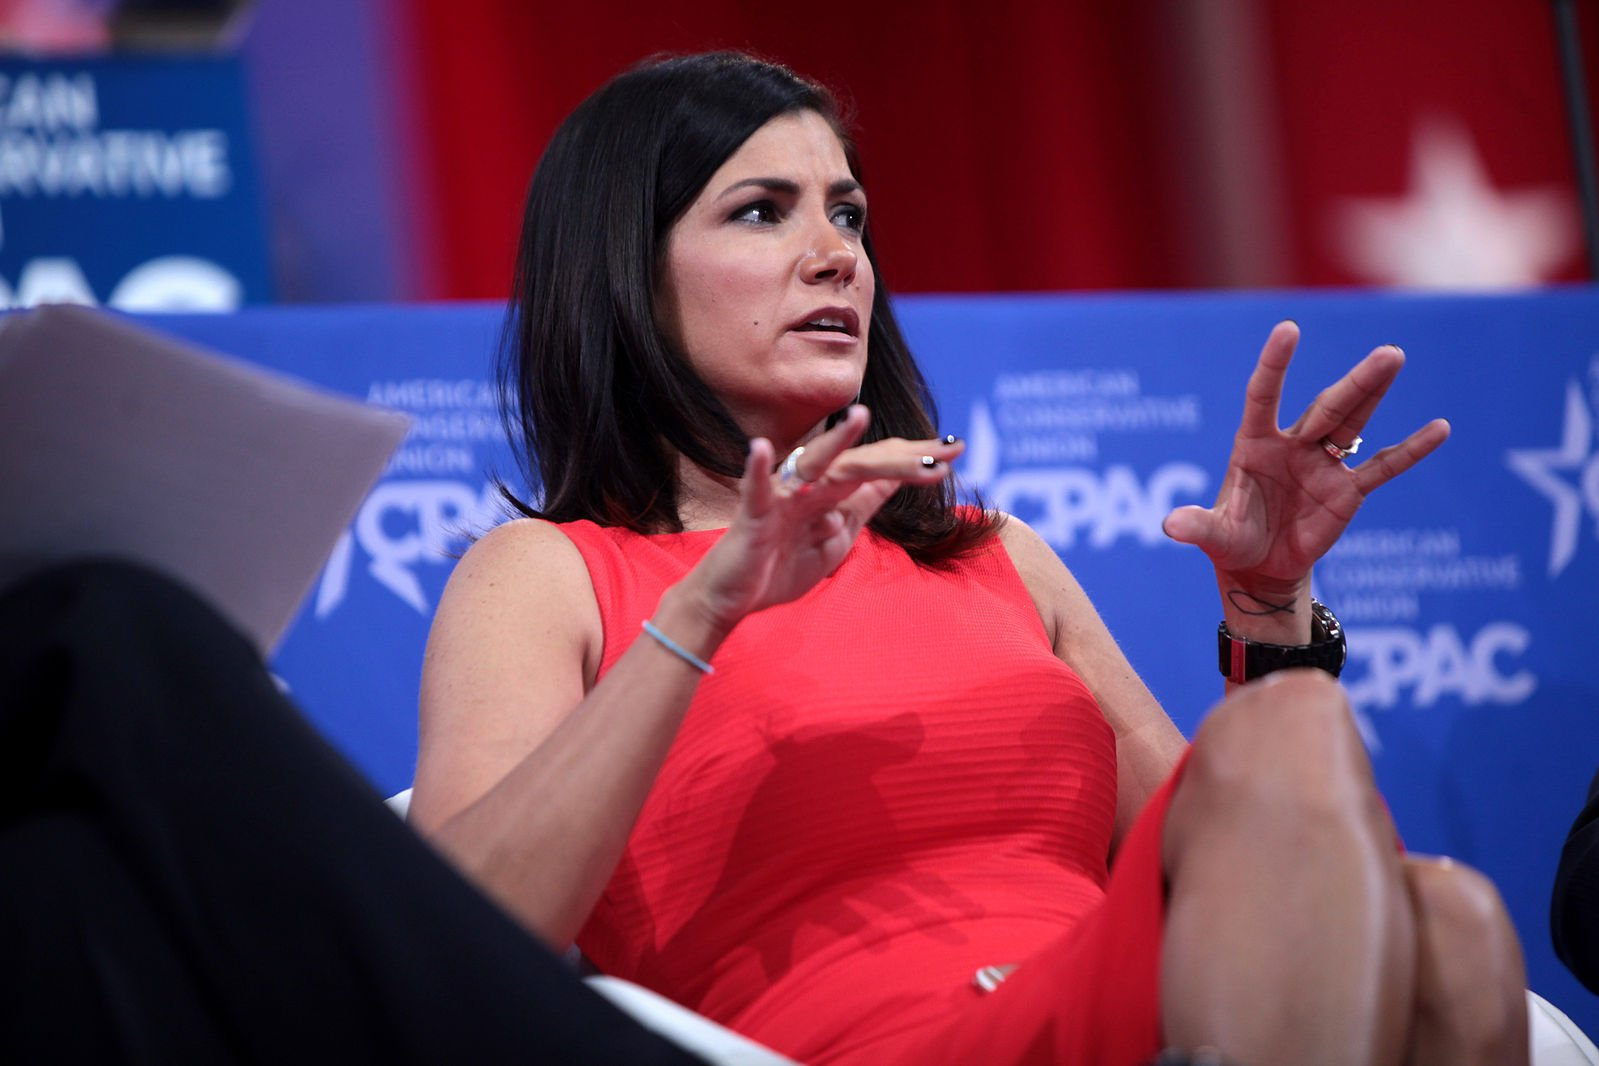 Loesch Blasts CT Gov for Calling NRA a Terrorist Group Hes Smearing Millions of LawAbiding Americans VIDEO